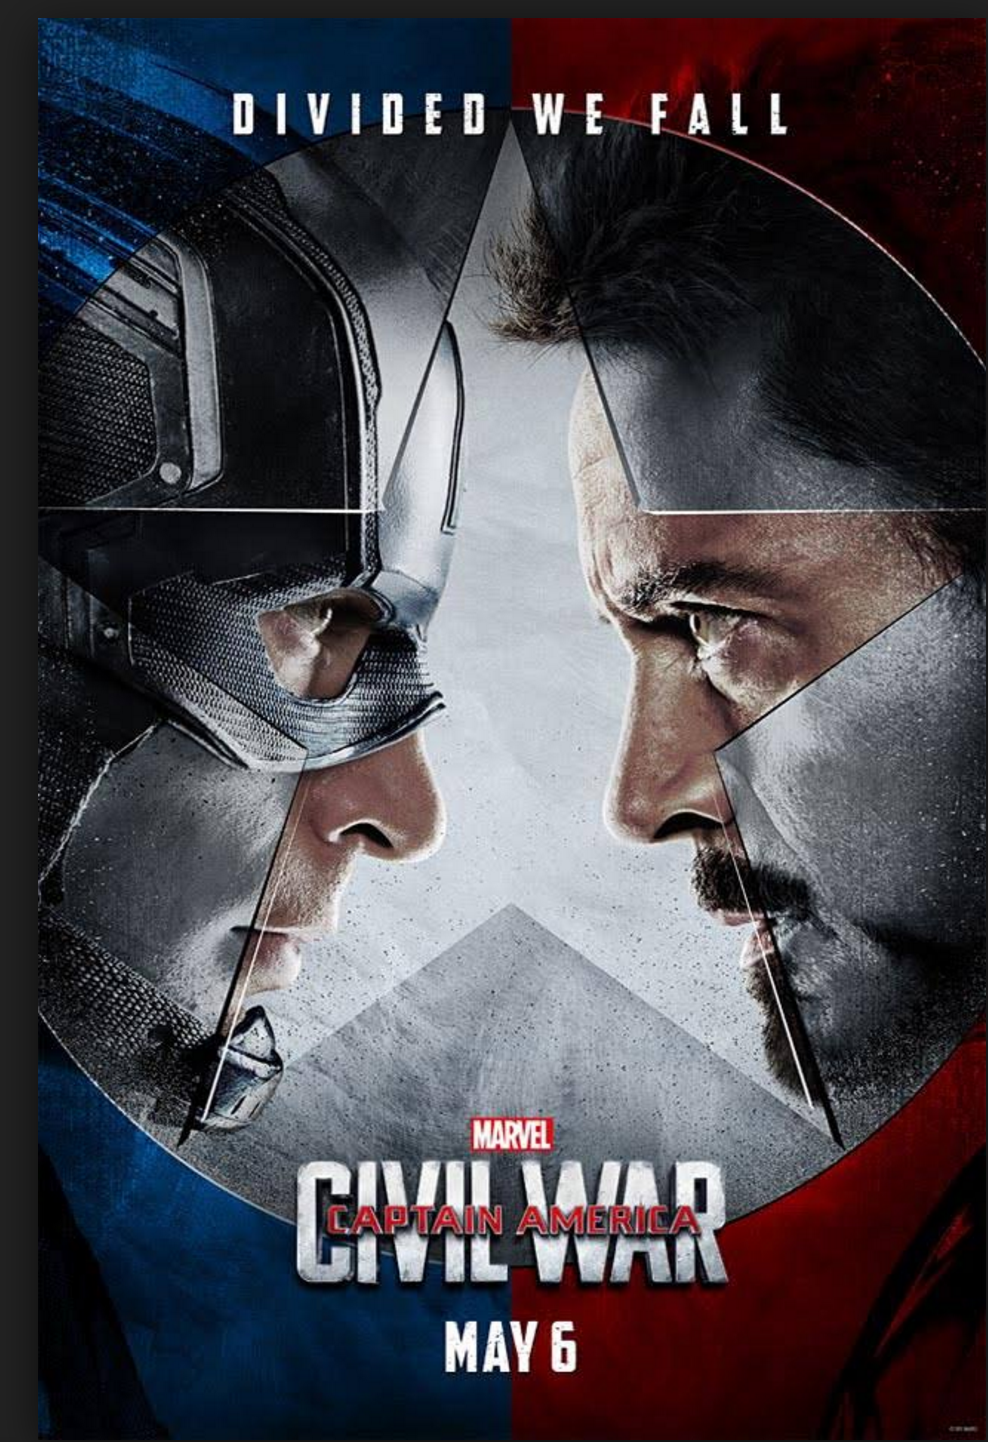 My household is split between Captain America and Iron Man....